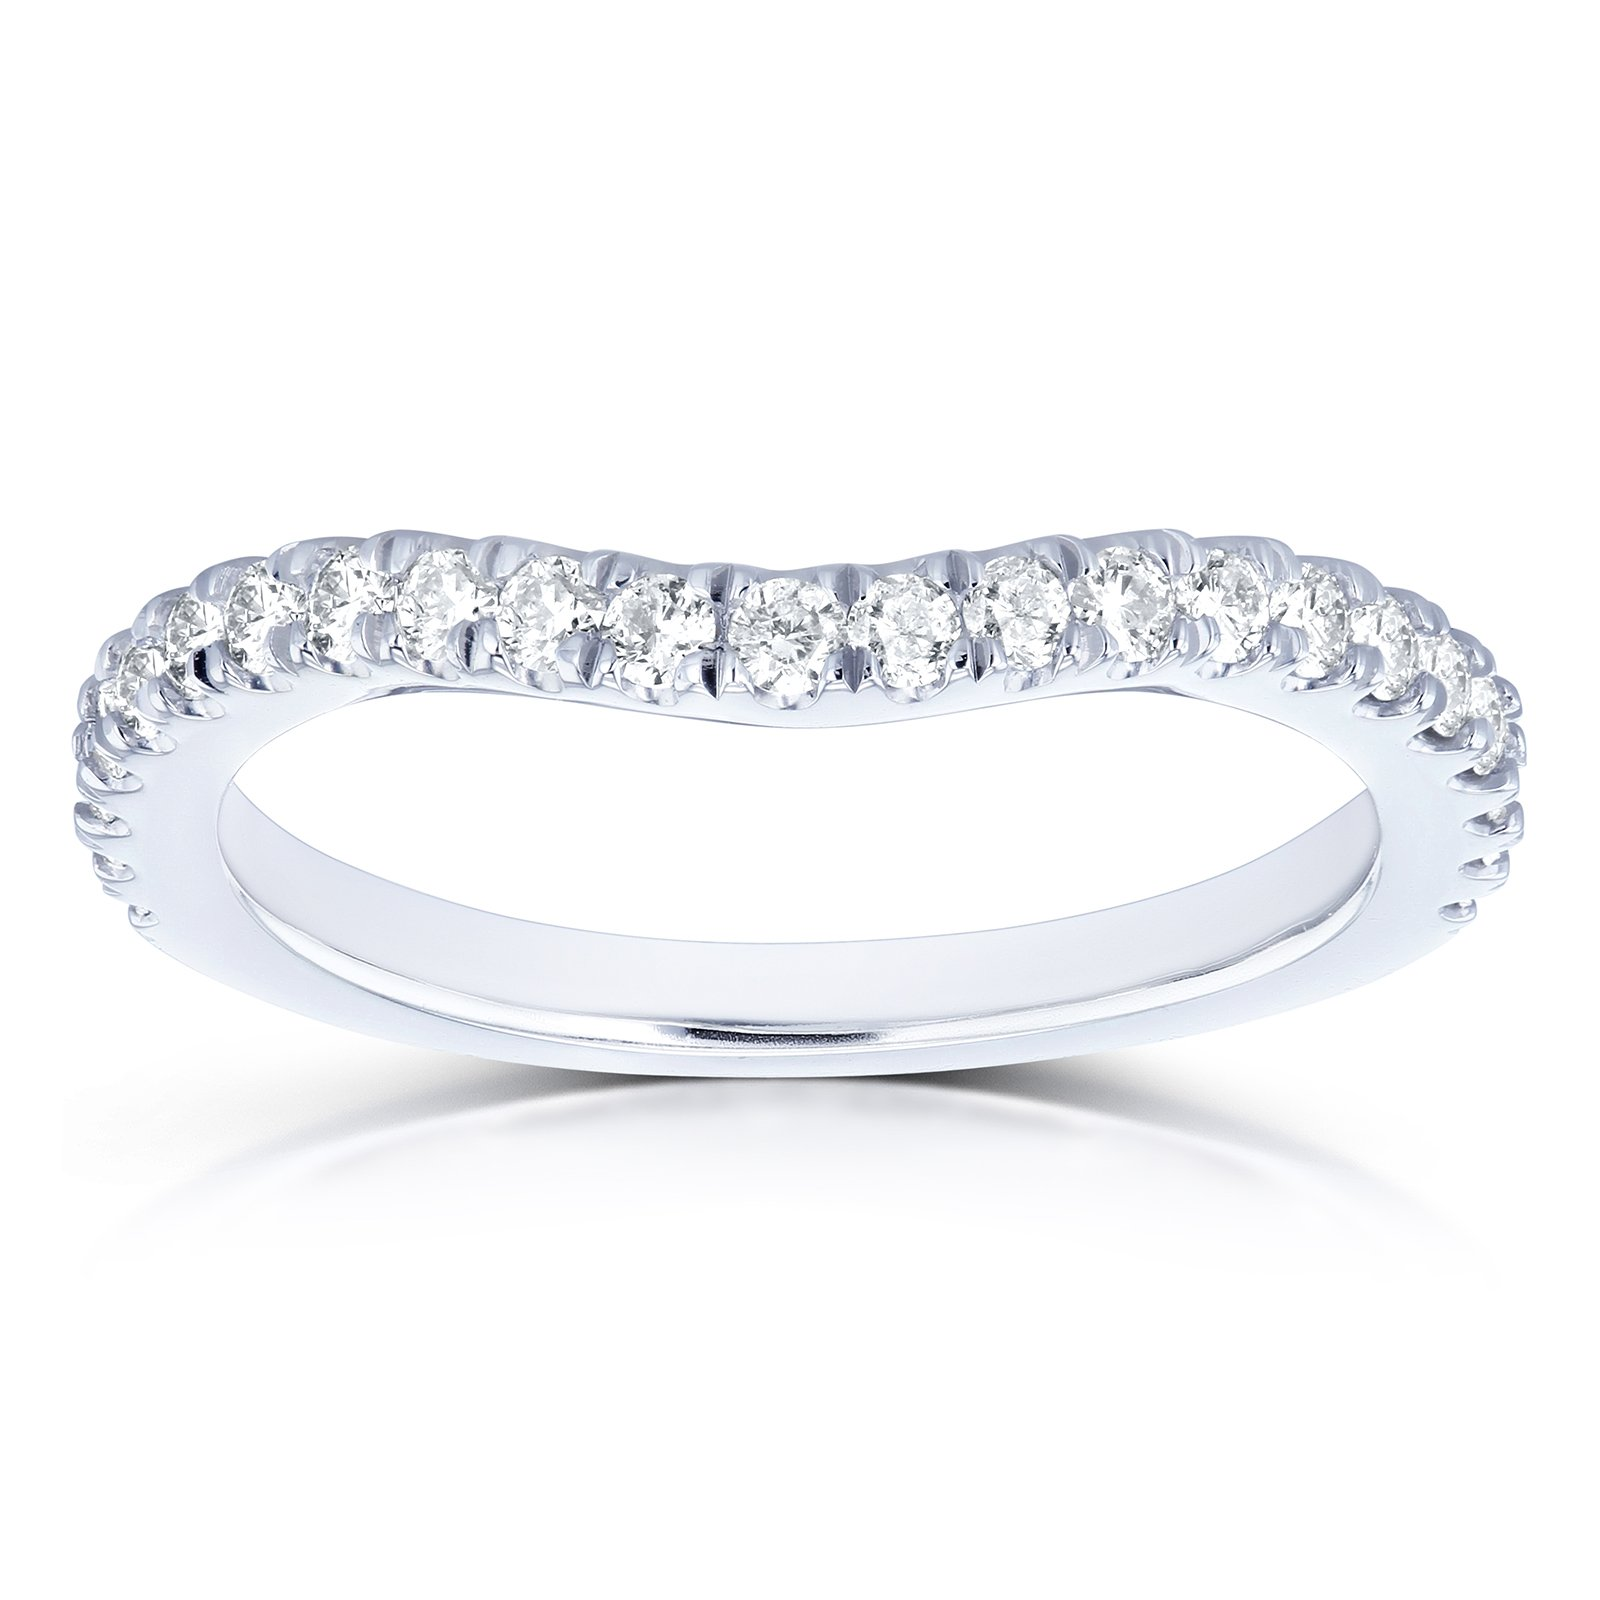 Diamond Curved Wedding Band 1/3 CTW in 14k White Gold, 7.5 by Kobelli